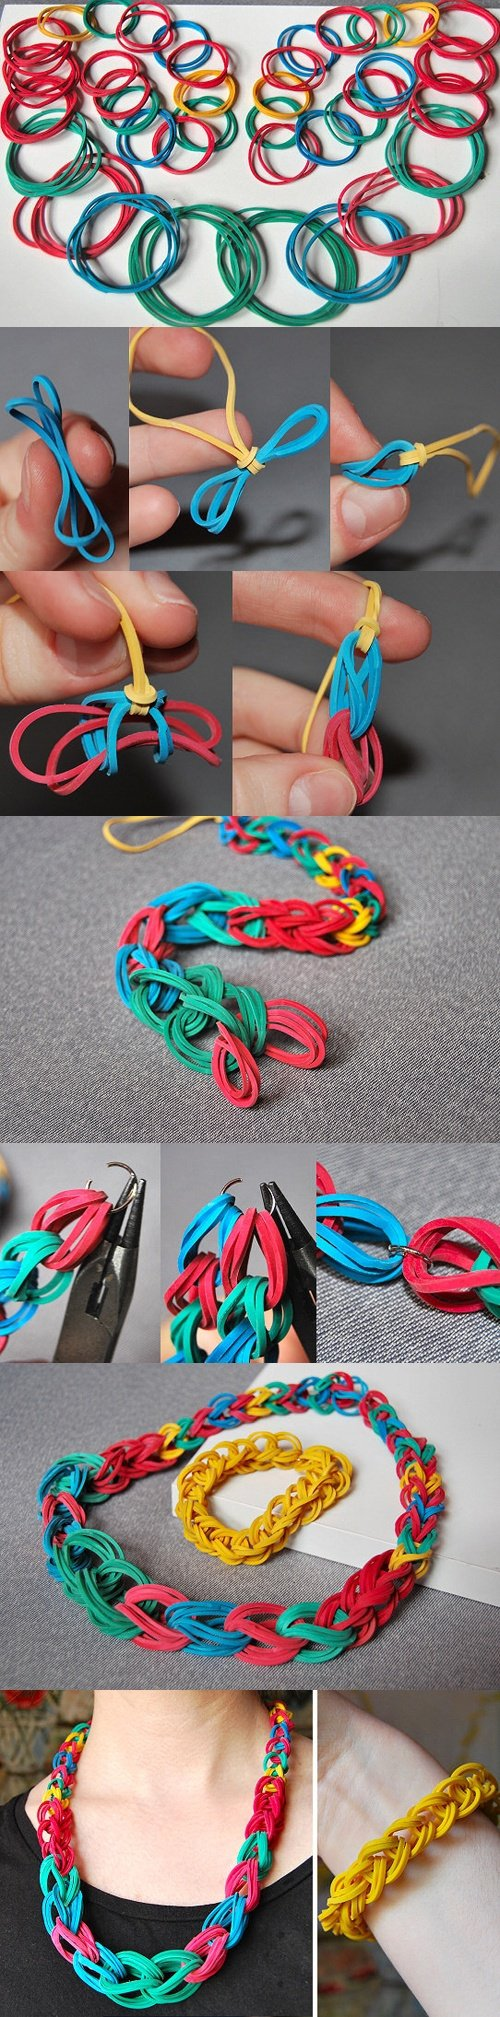 DIY-Simple-Rubber-Band-Bracelet